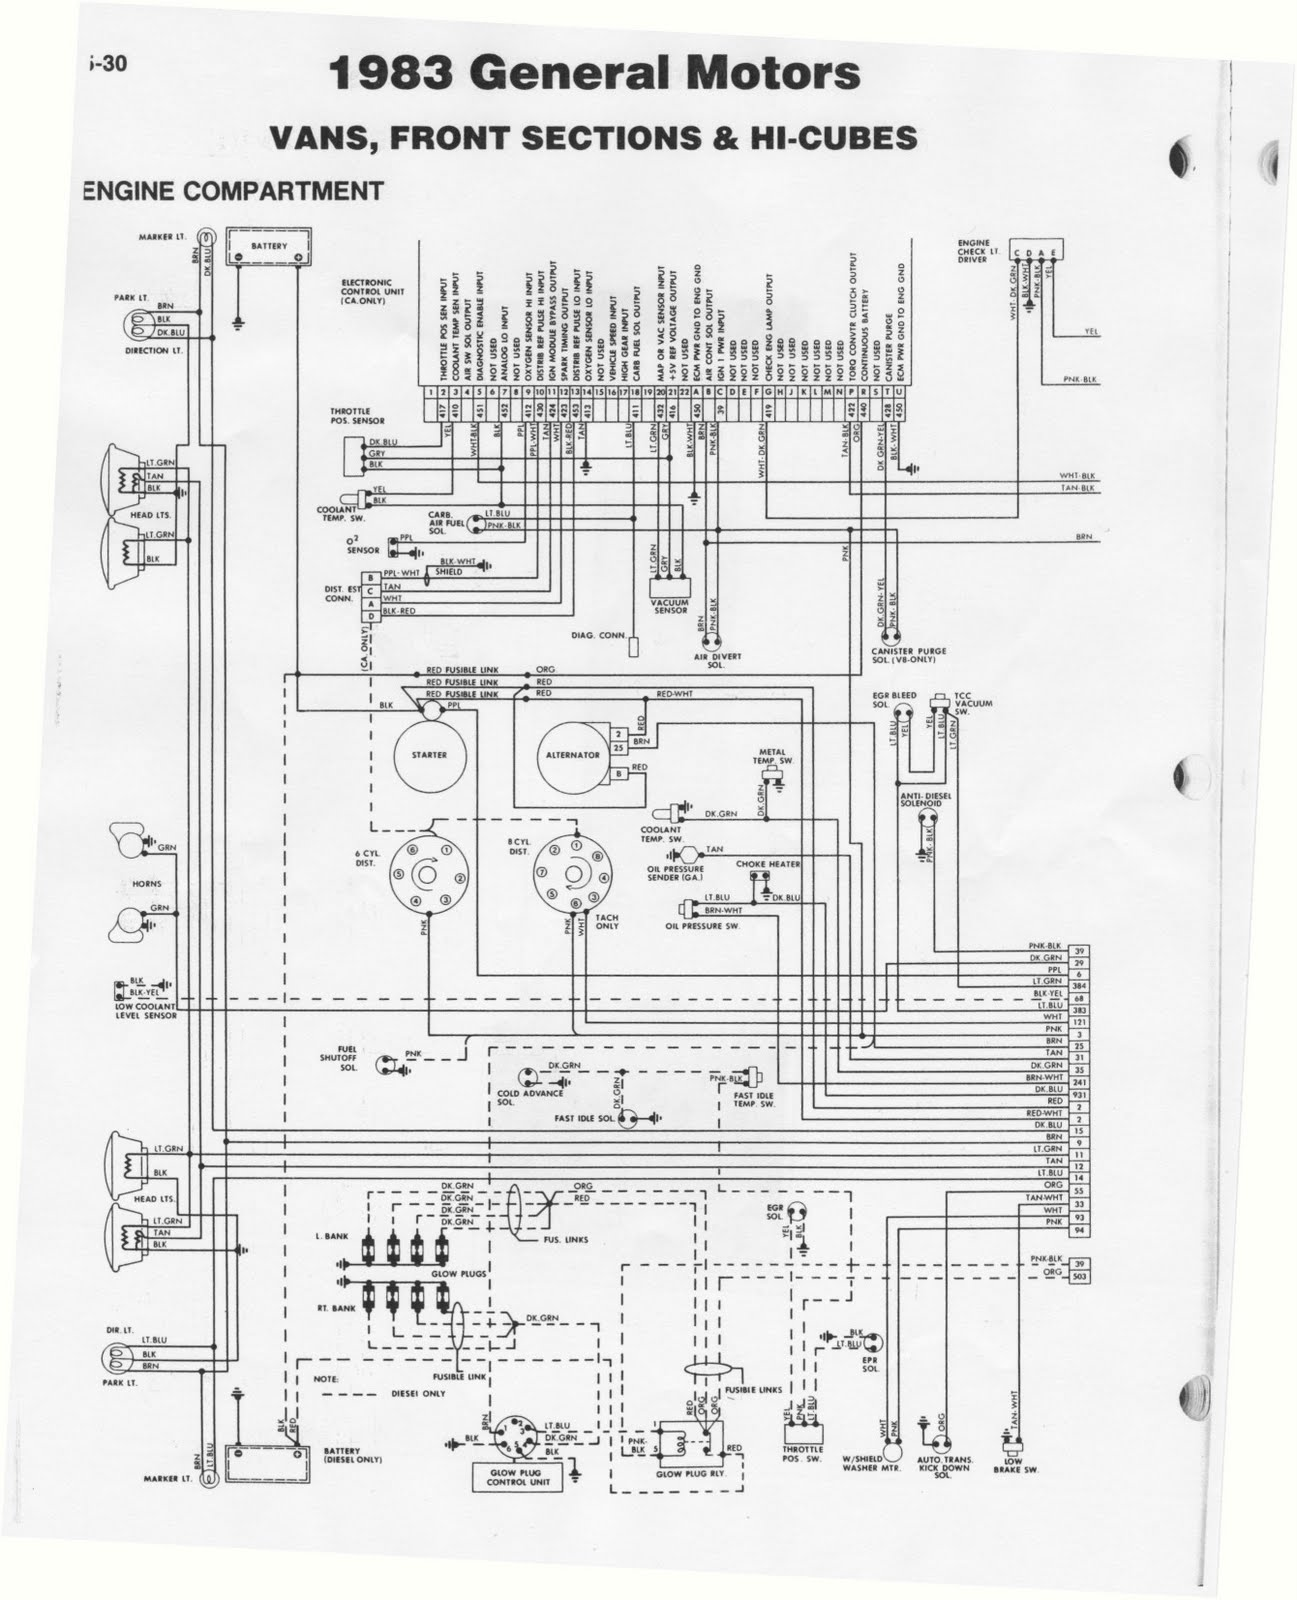 DIAGRAM] 1992 Fleetwood Pace Arrow Wiring Diagram FULL Version HD Quality Wiring  Diagram - 126807.ACCNET.FRElectrical Contactor Circuit Diagram - accnet.fr